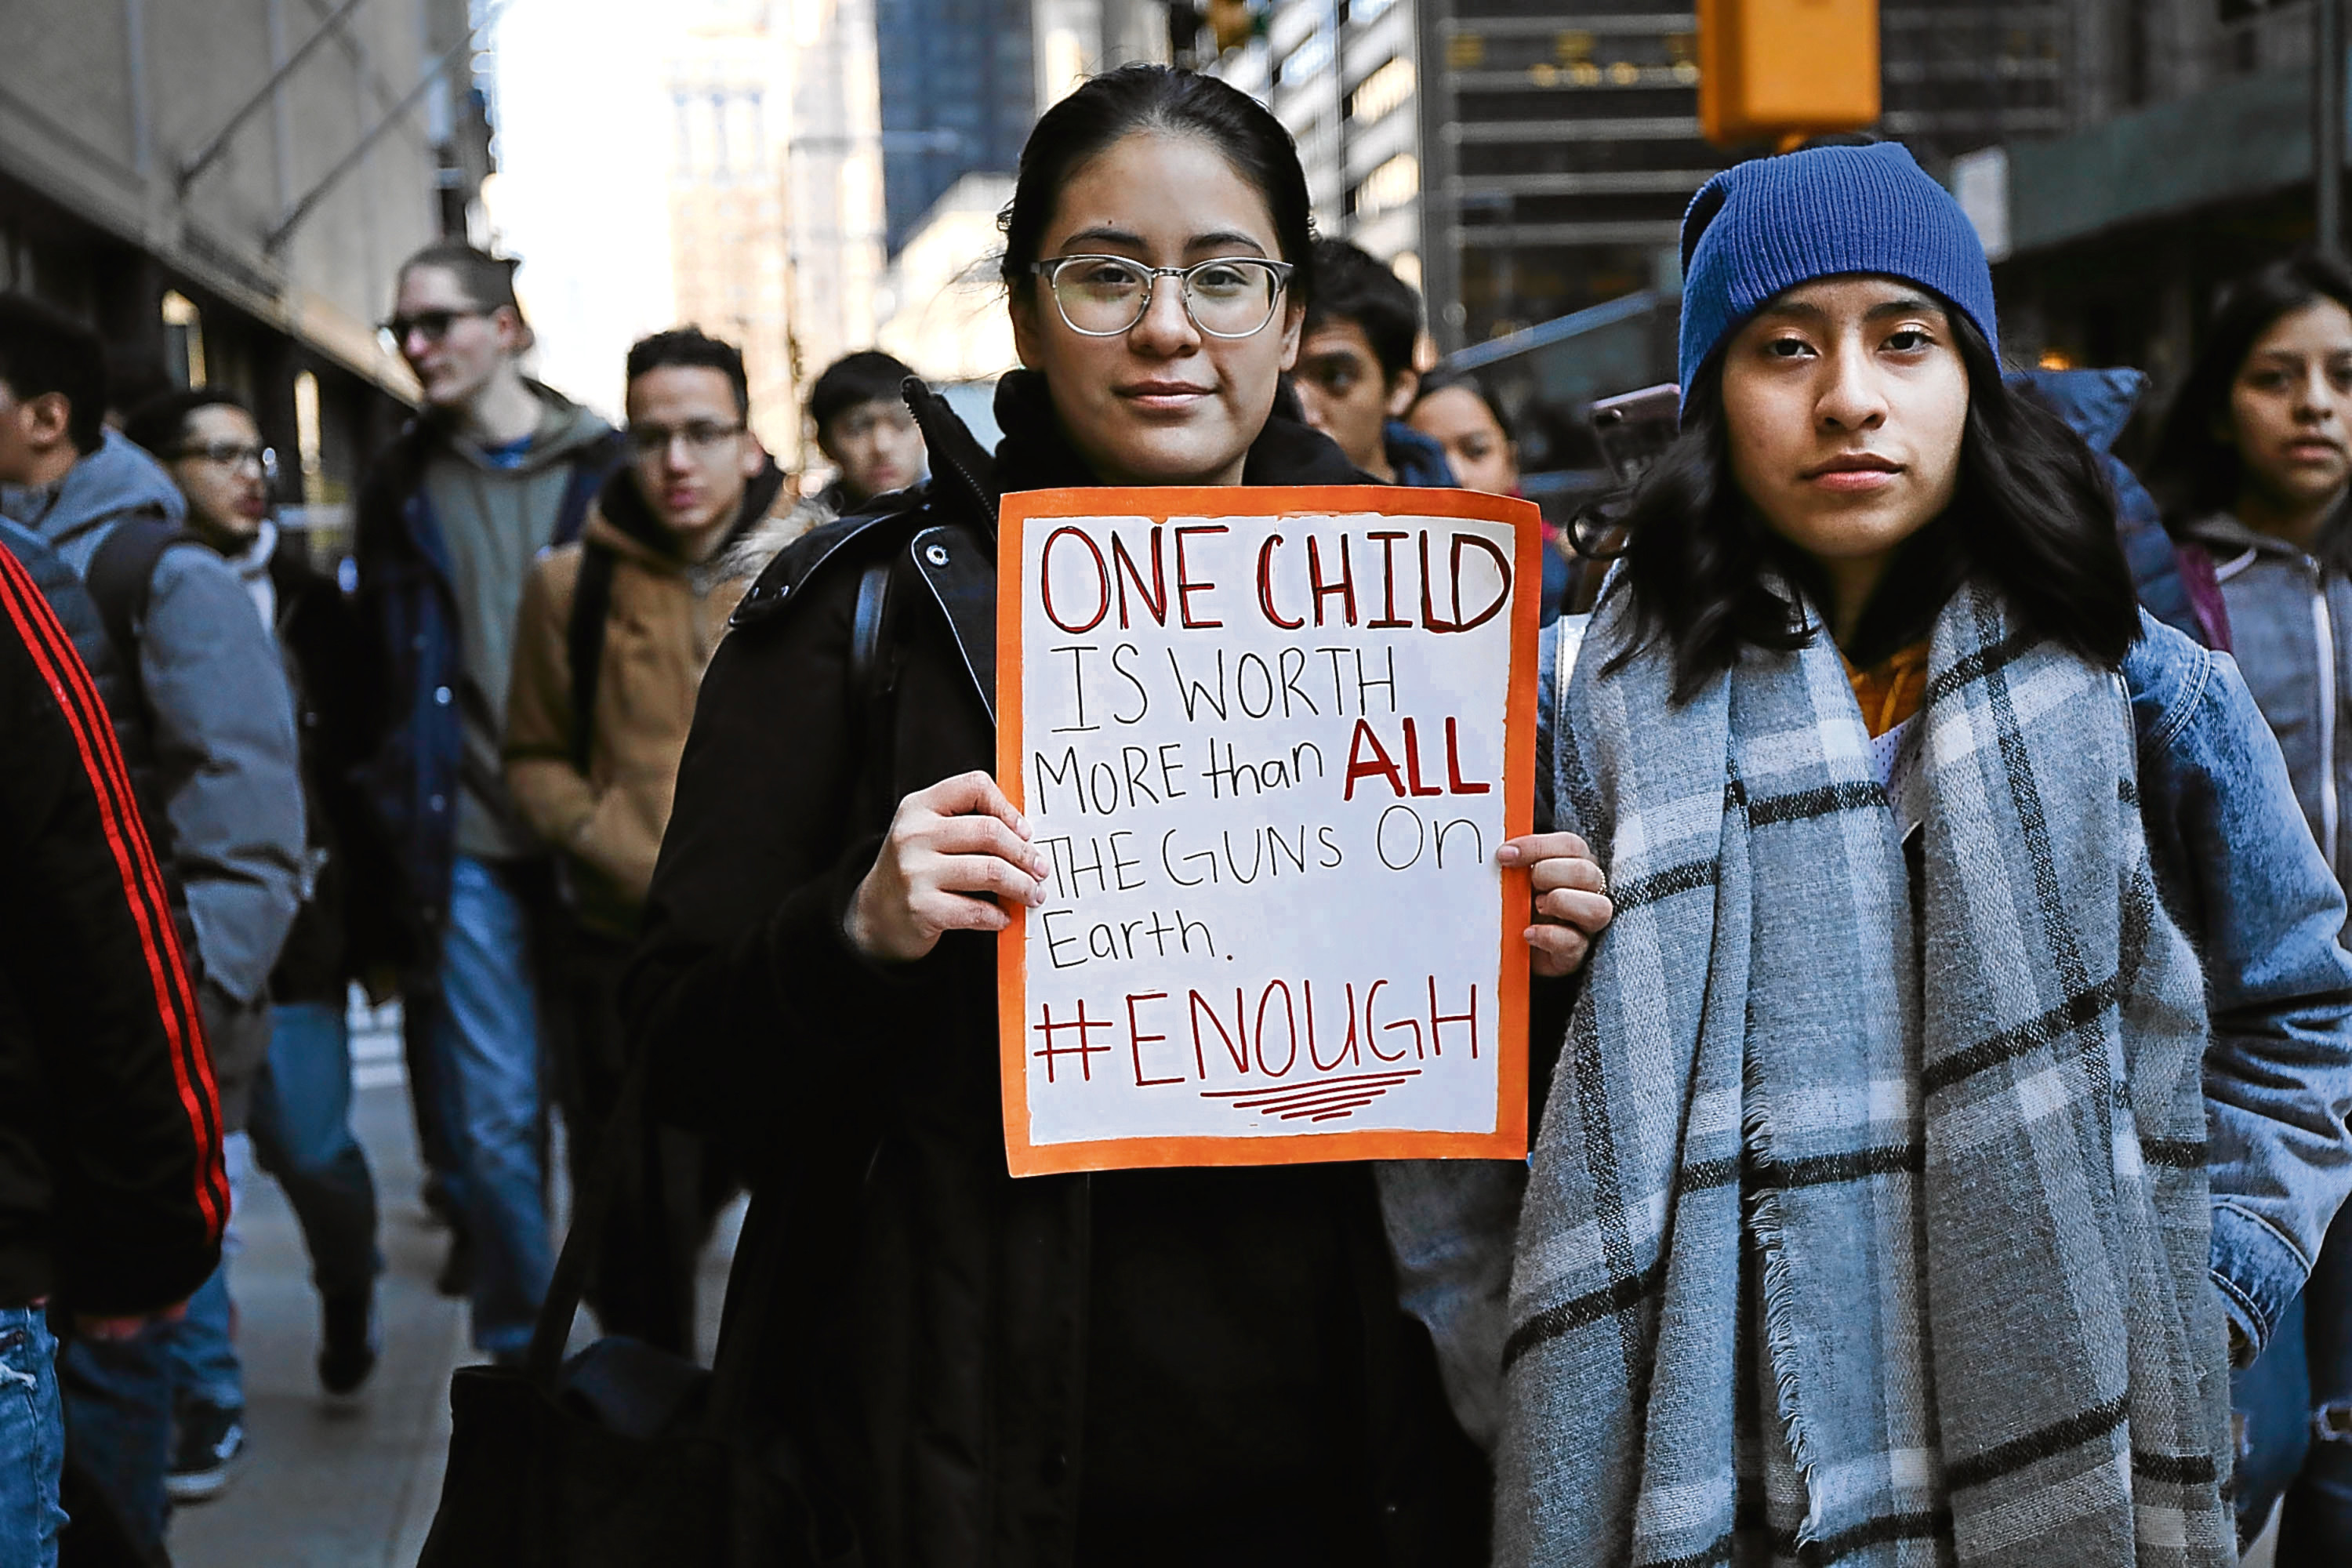 Students from surrounding schools gather at Zuccotti Park in lower Manhattan to mark one month since the high school shooting in Parkland, Florida and to demand an end to gun violence on March 14, 2018 in New York City  (Spencer Platt/Getty Images)